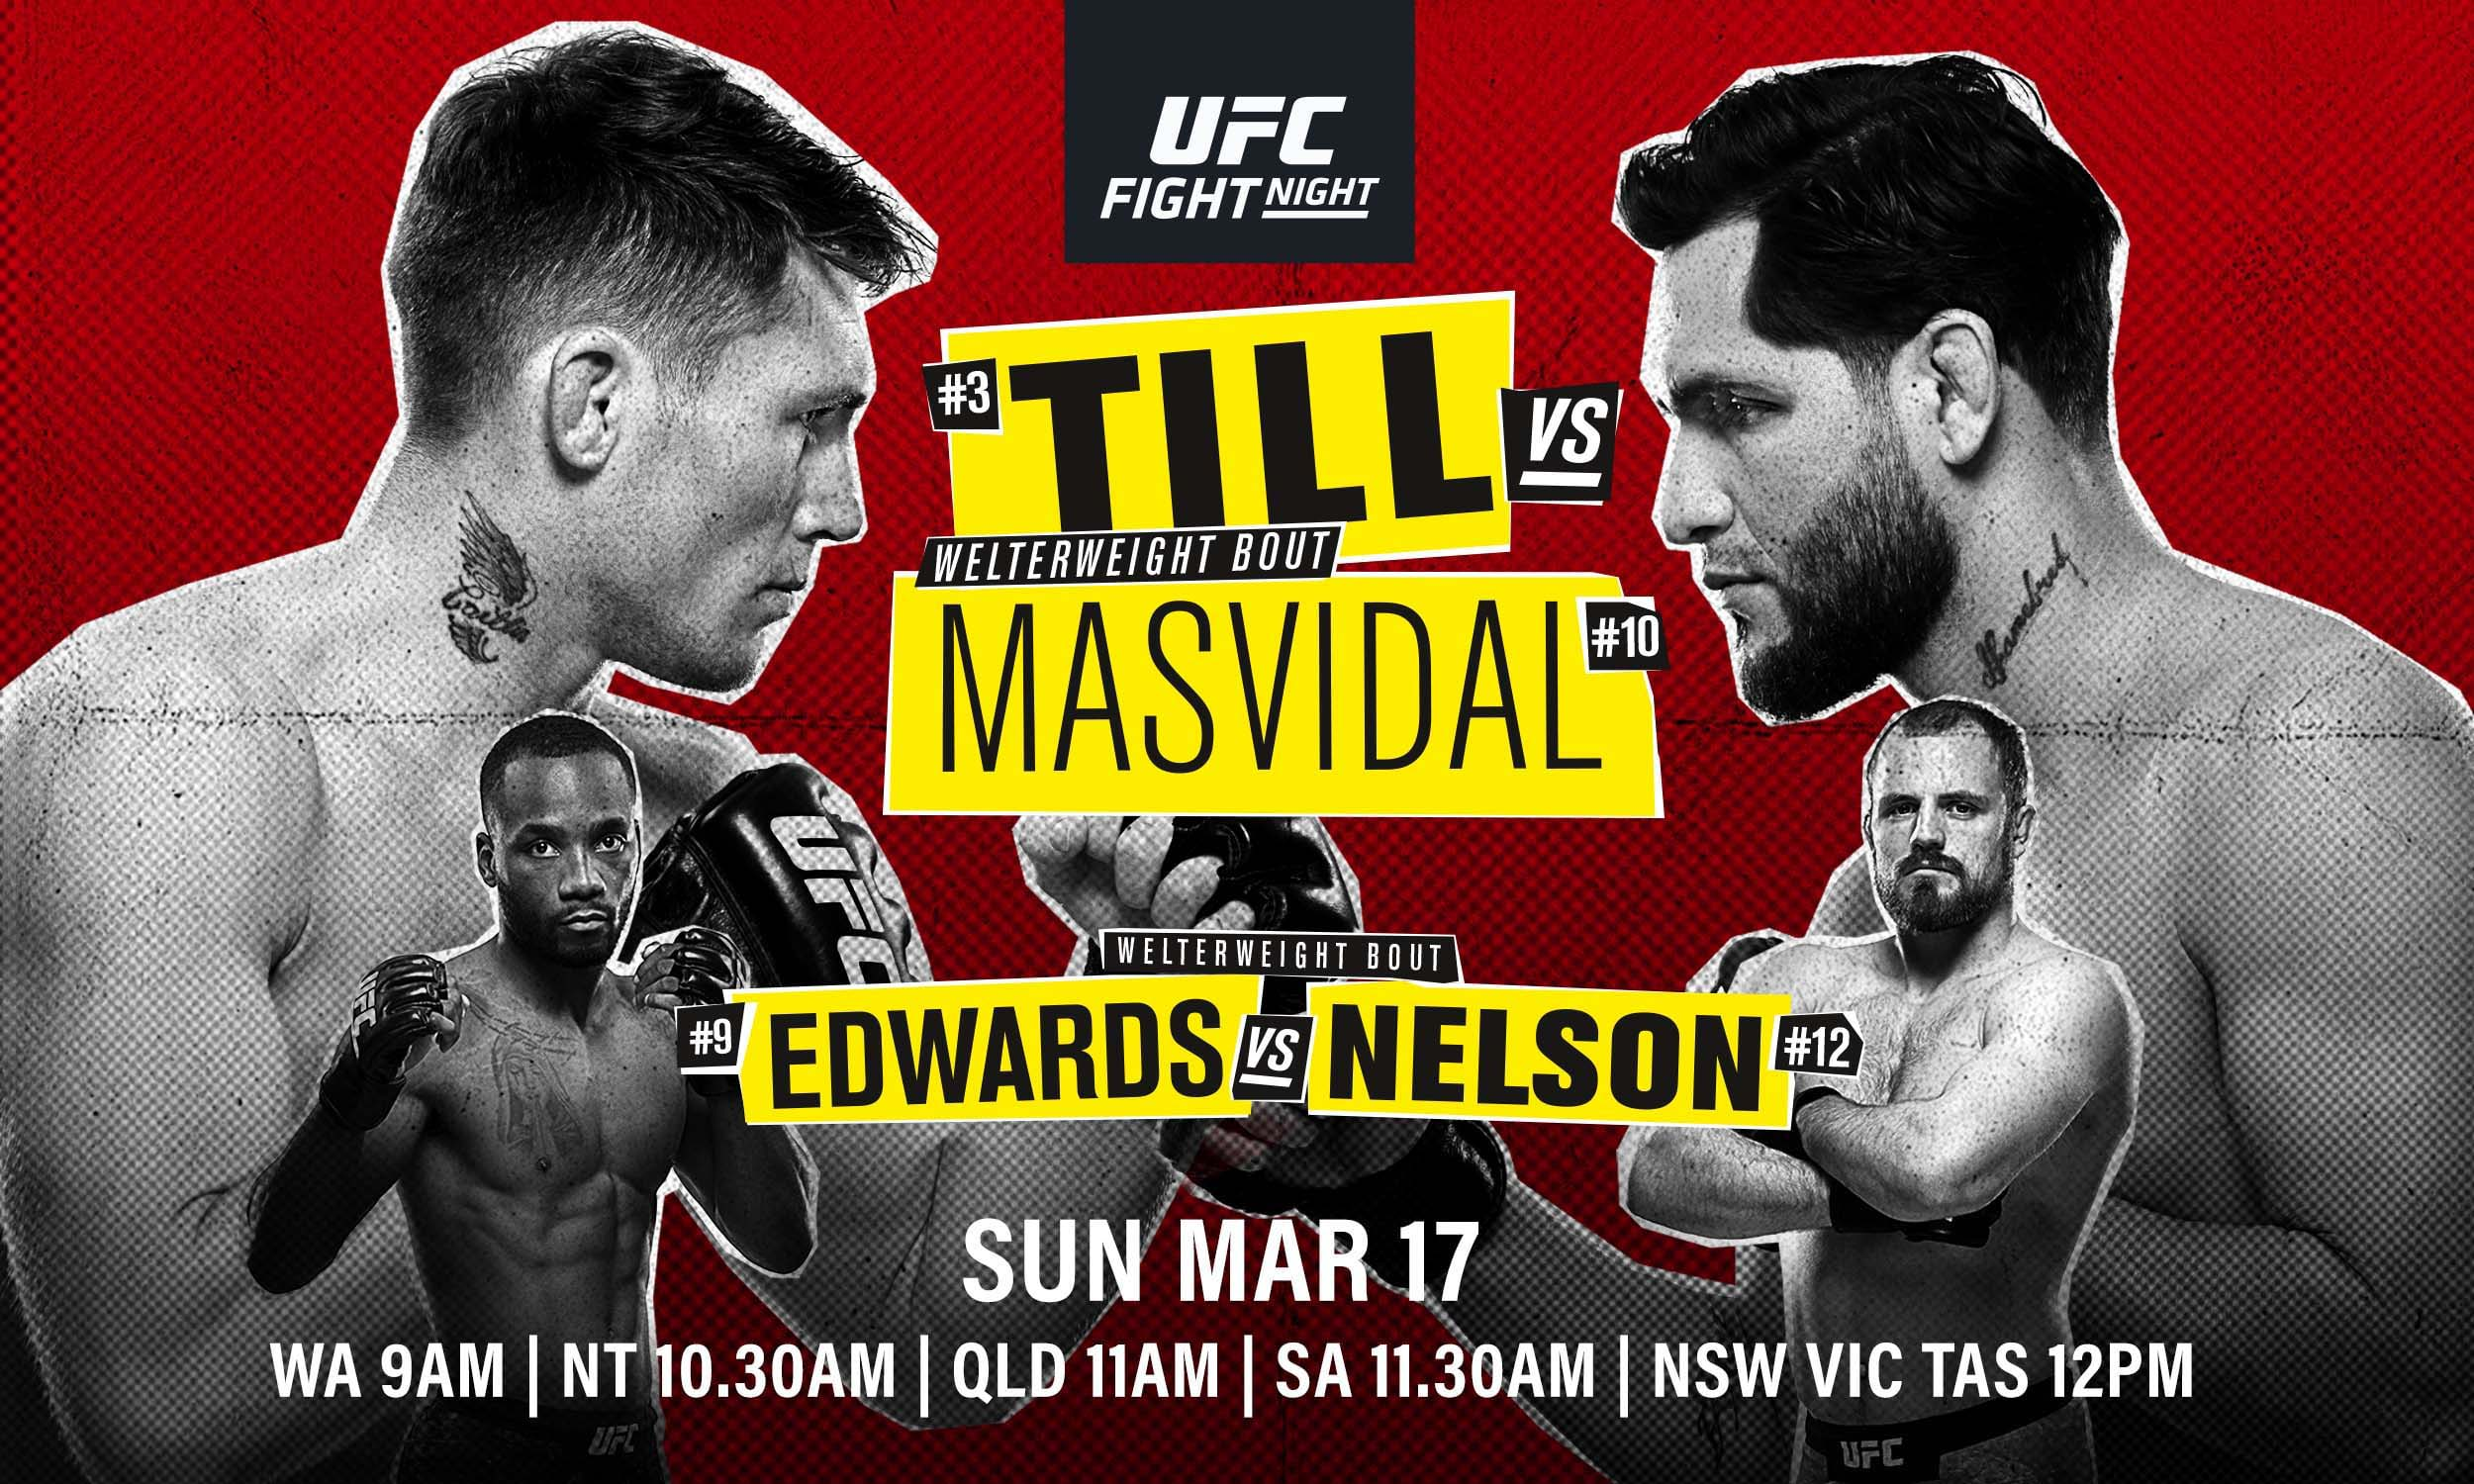 UFC Fight Night_ Till vs Masvisdal_Banner Image_2500x1500-min.jpg